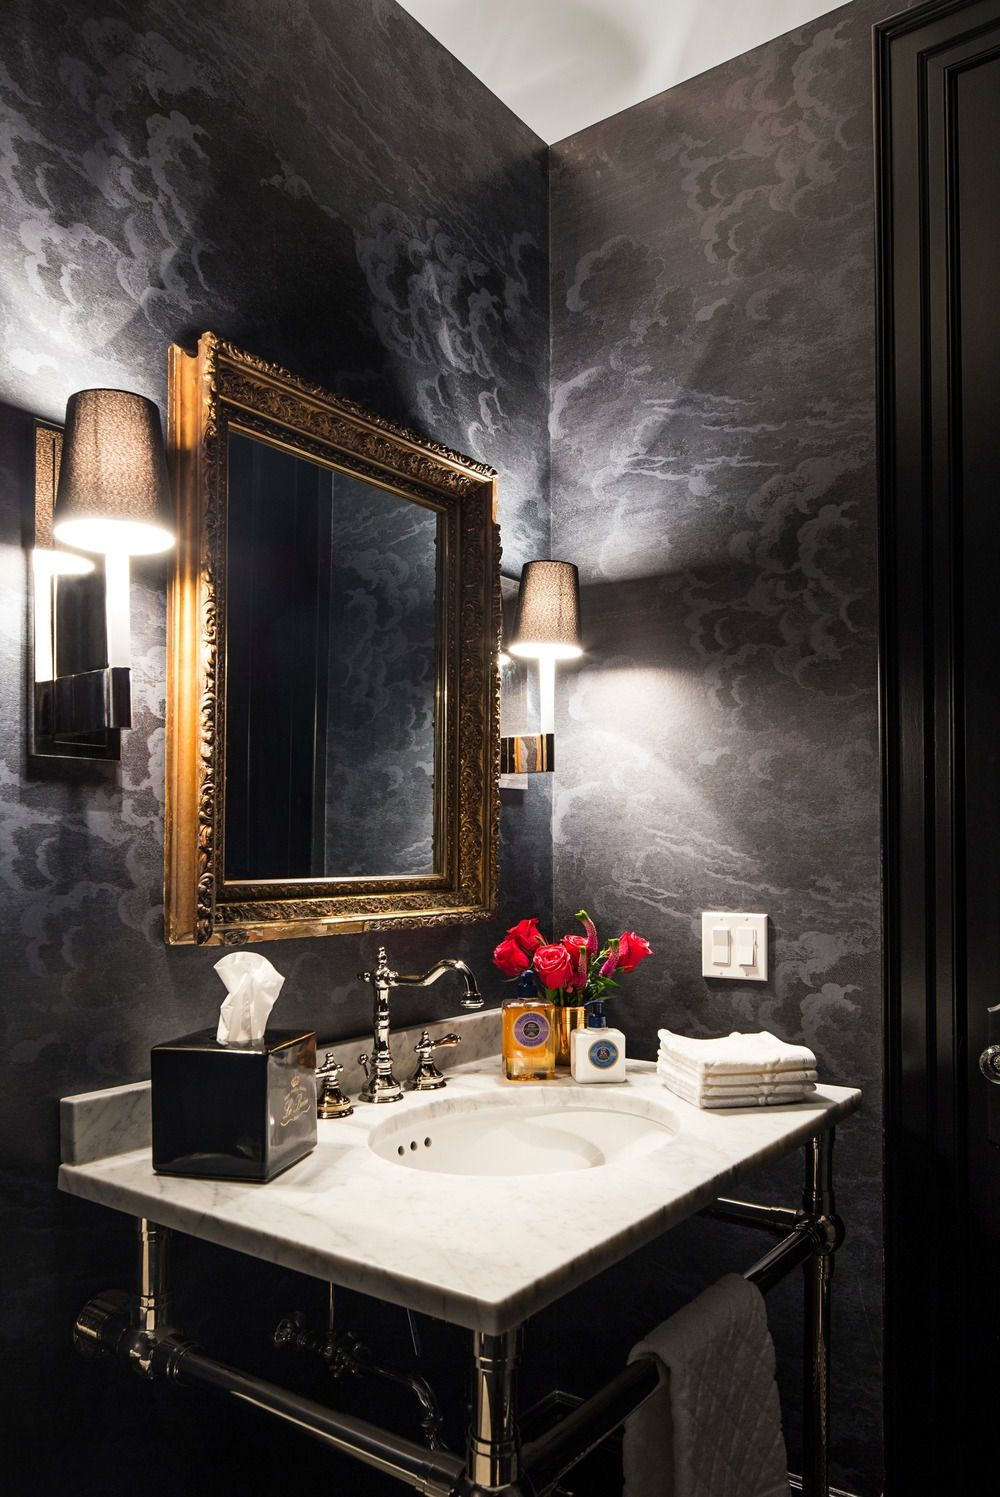 The powder room features a white sink counter surrounded by elegant black walls lighted by a couple of wall lights photo credit erik rotter